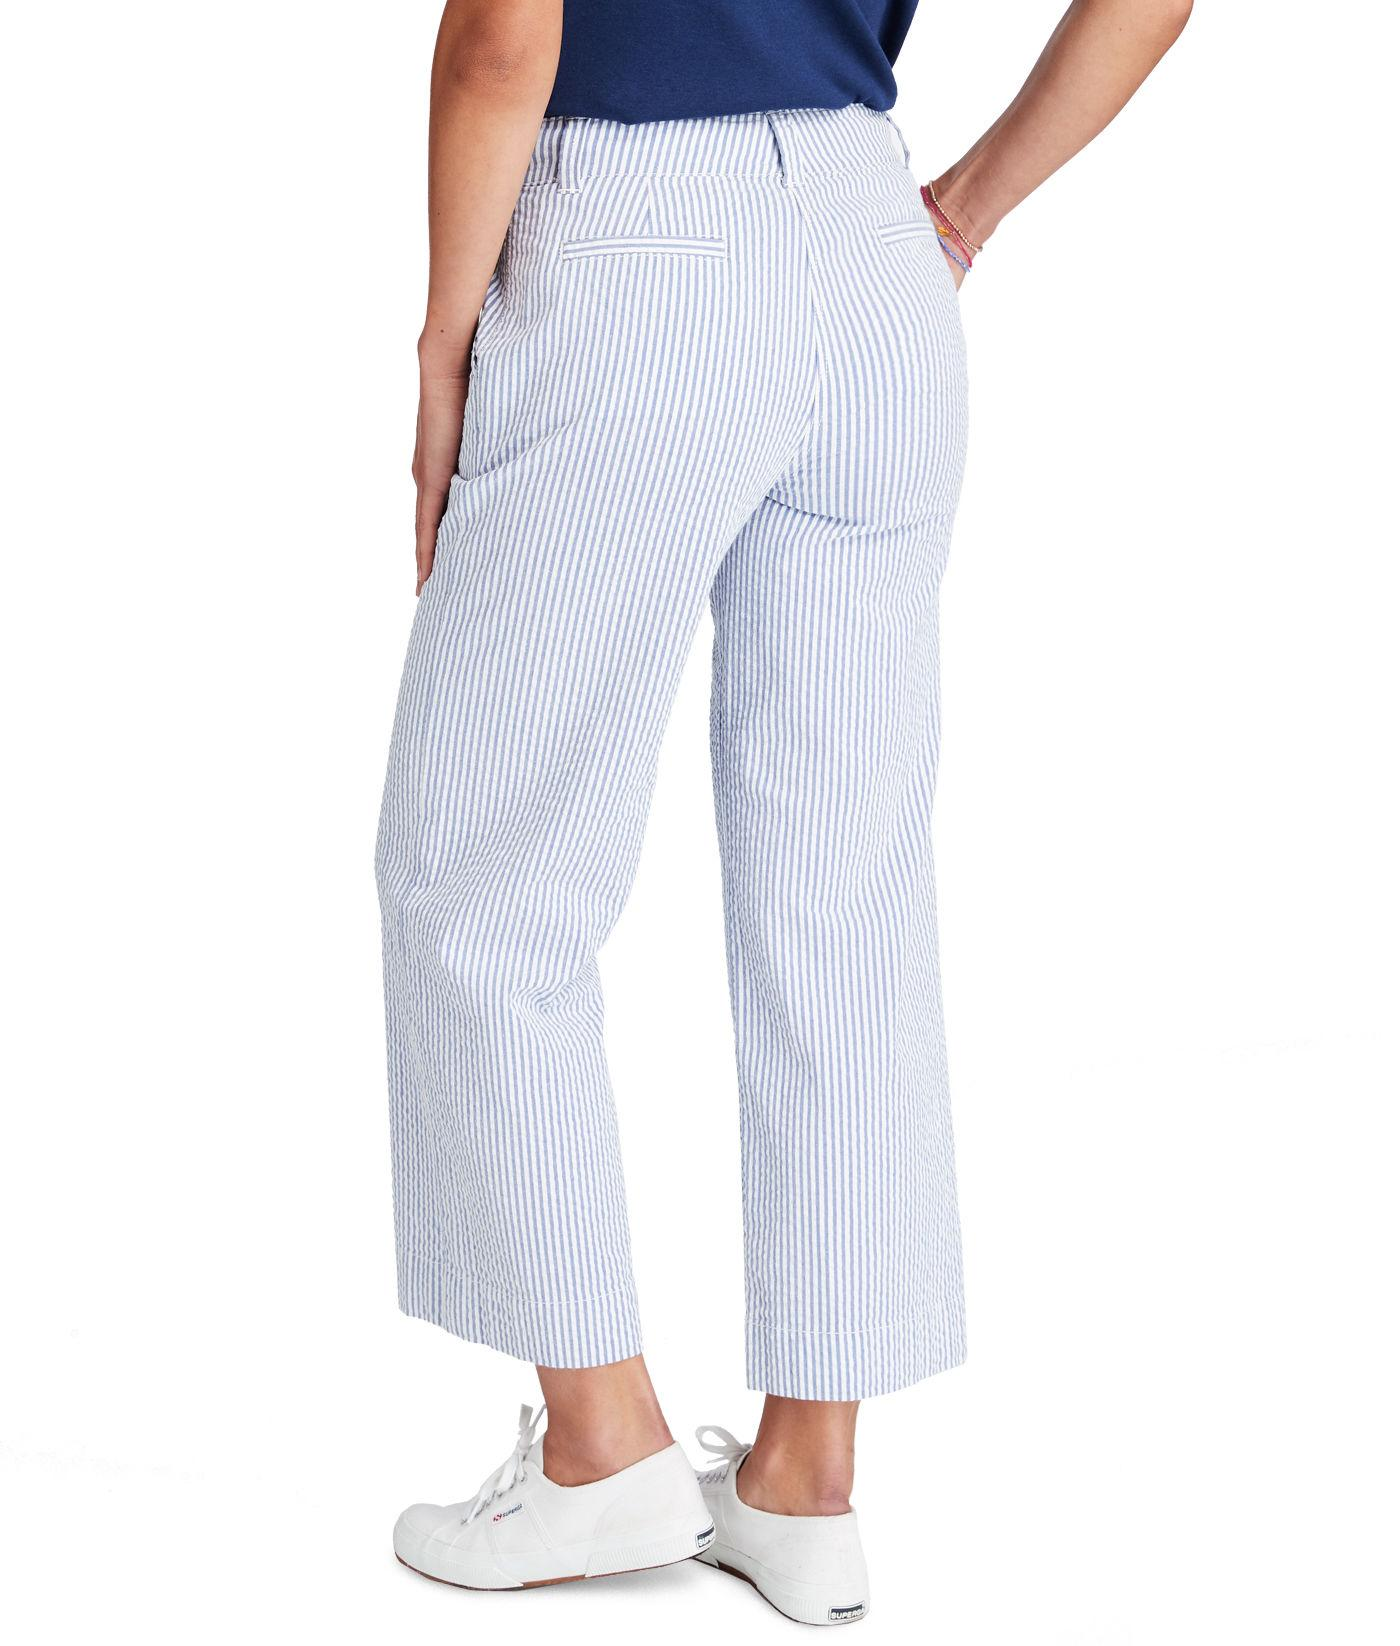 08a998e3776a Lyst - Vineyard Vines Seersucker High Waist Cropped Pants in Blue